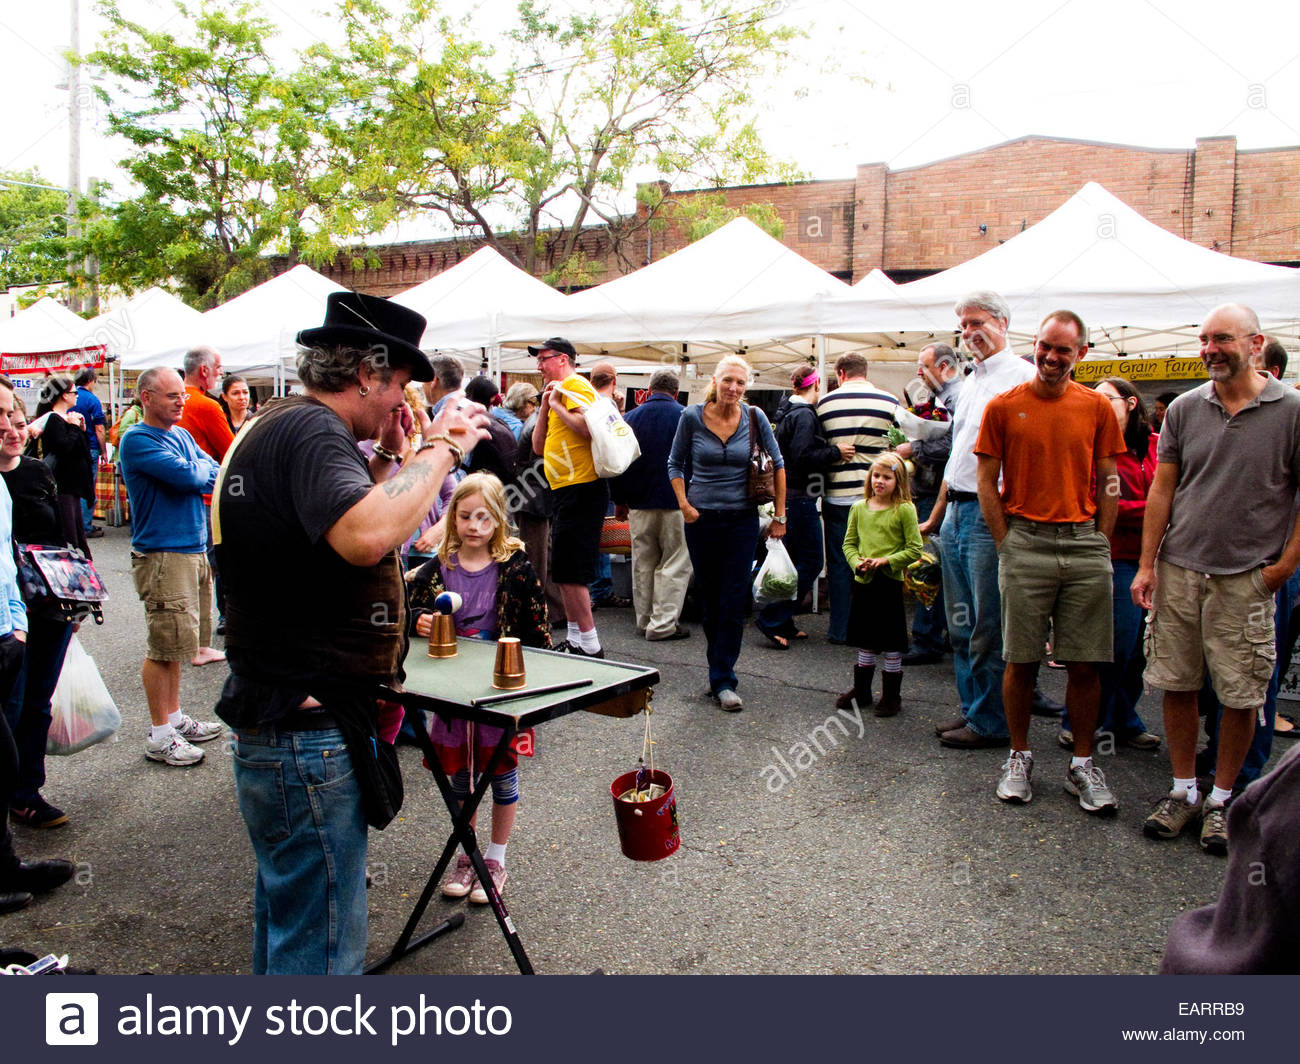 A man performs magic tricks in front of crowd at local farmers market. - Stock Image